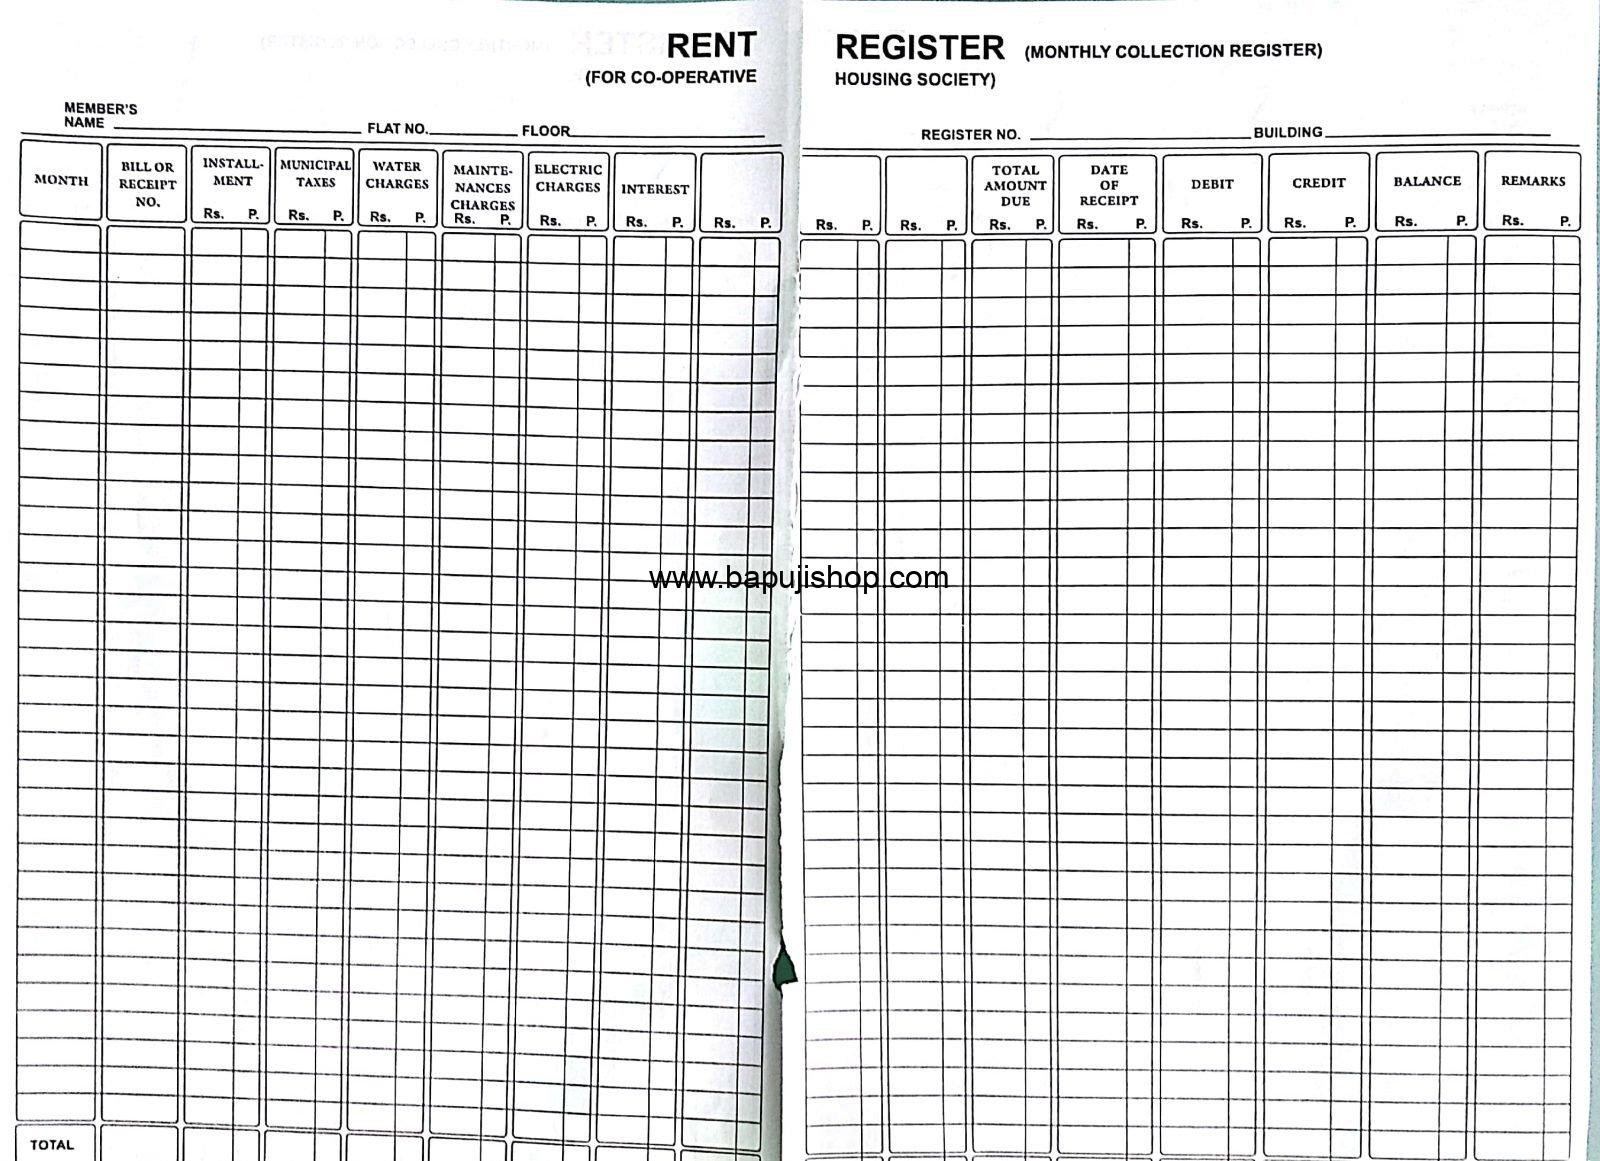 Rent Register for Co-Operative housing Society